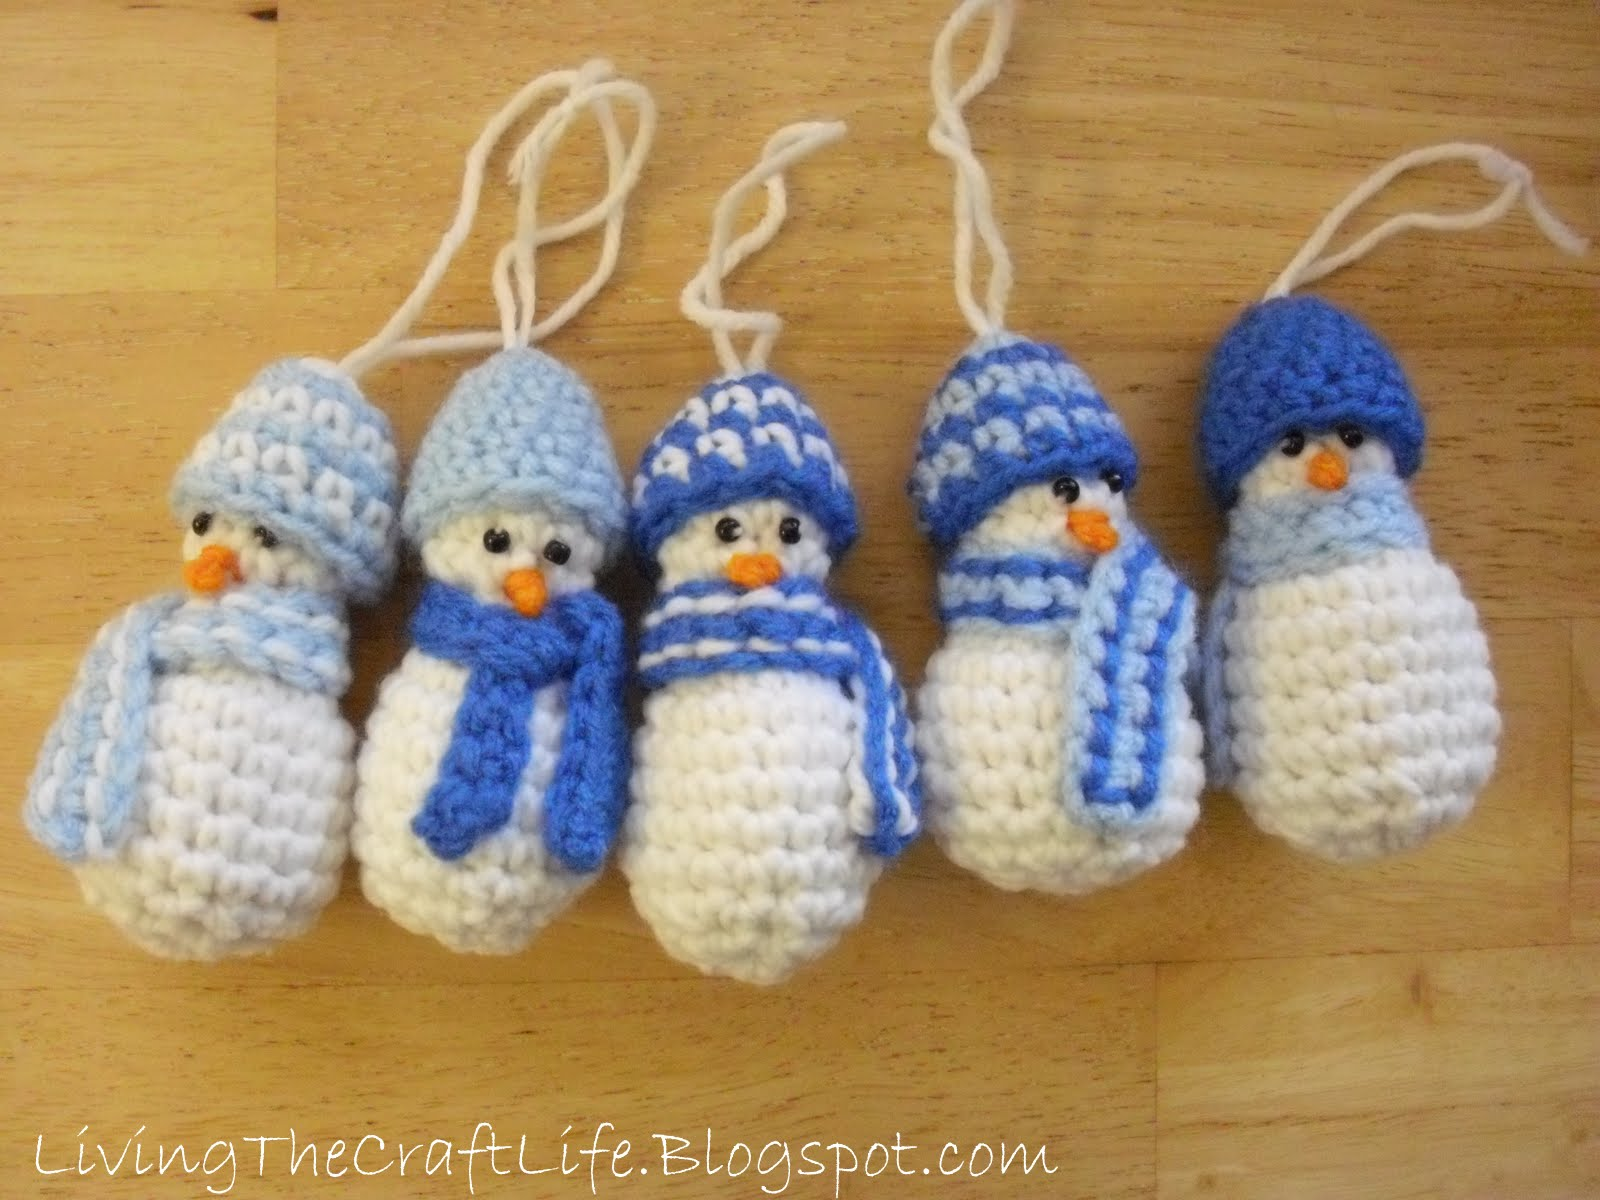 Living the Craft Life: Mini Snowman Christmas Ornament